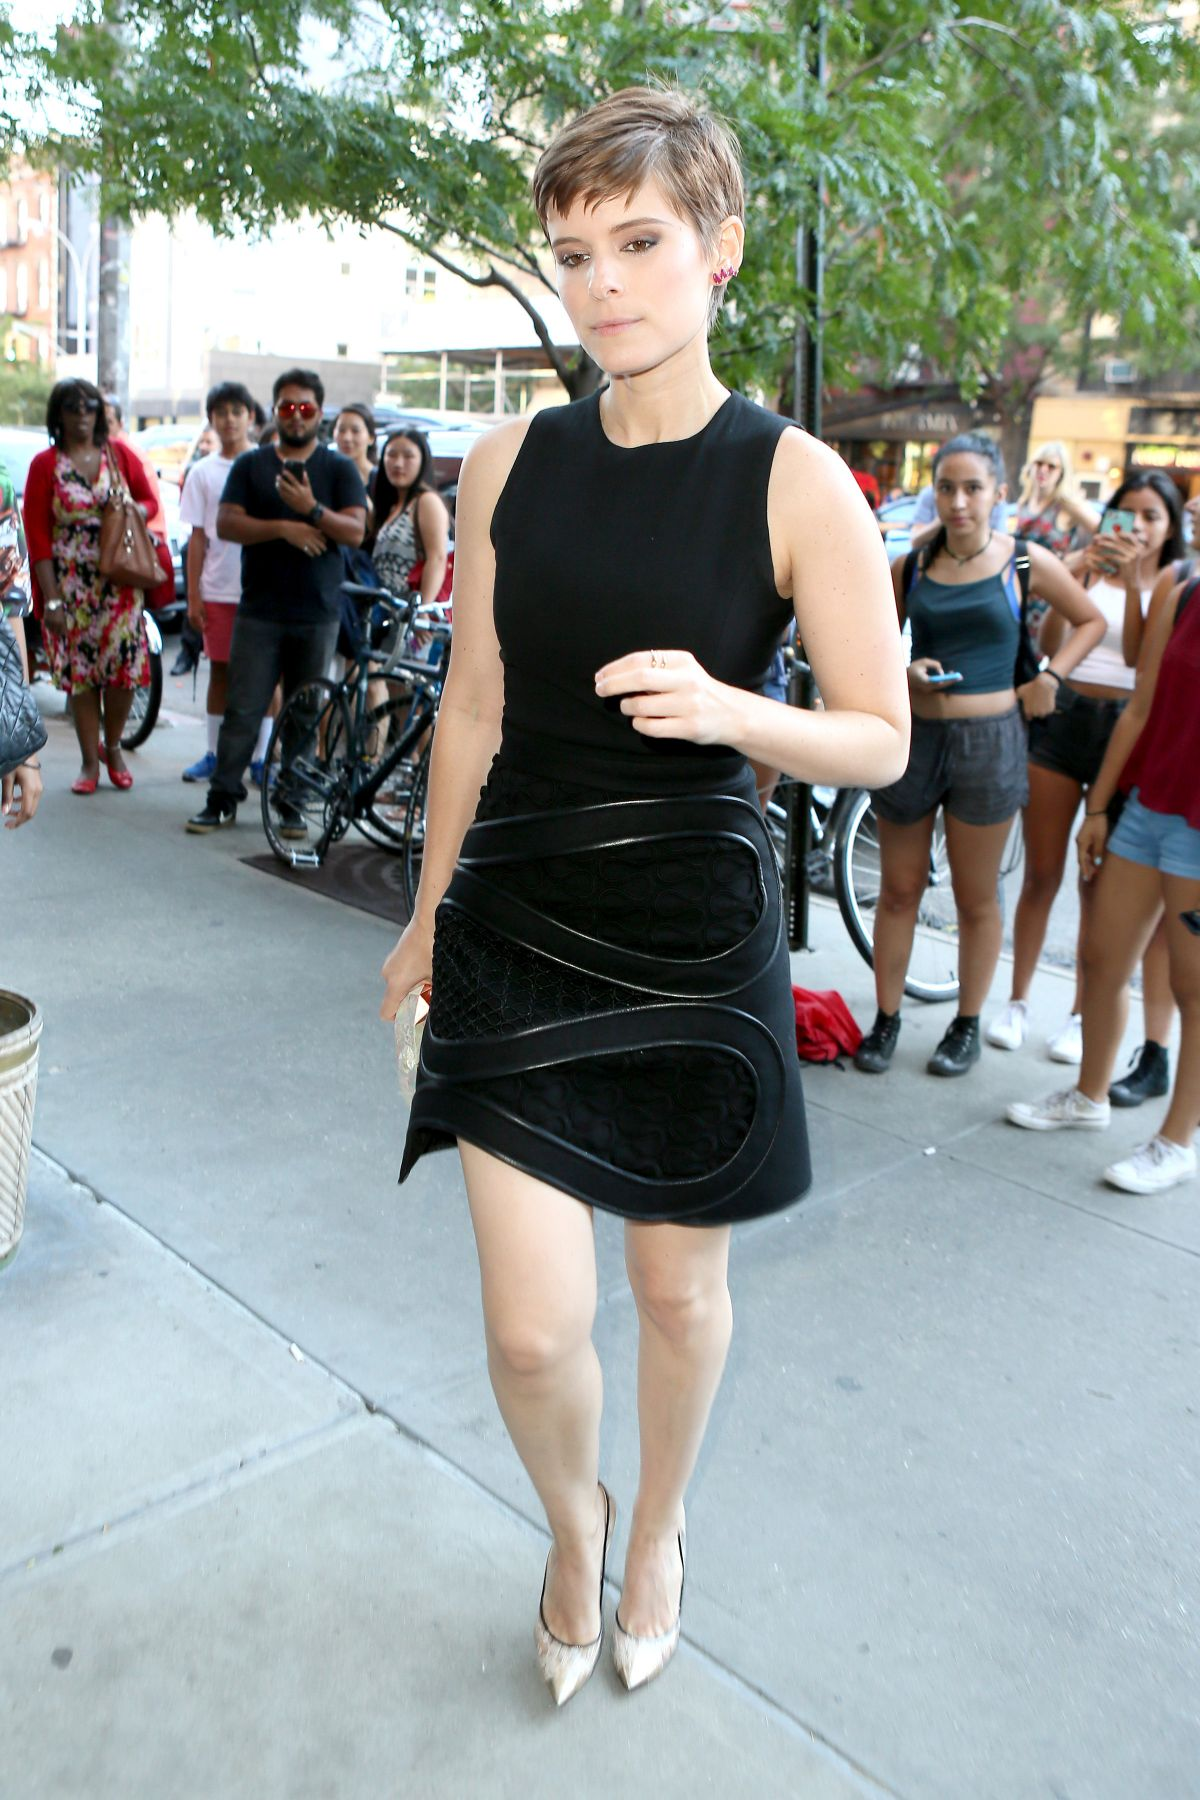 KATE MARA Arrives at The Tonight Show with Jimmy Falon in New York 08/04/2015